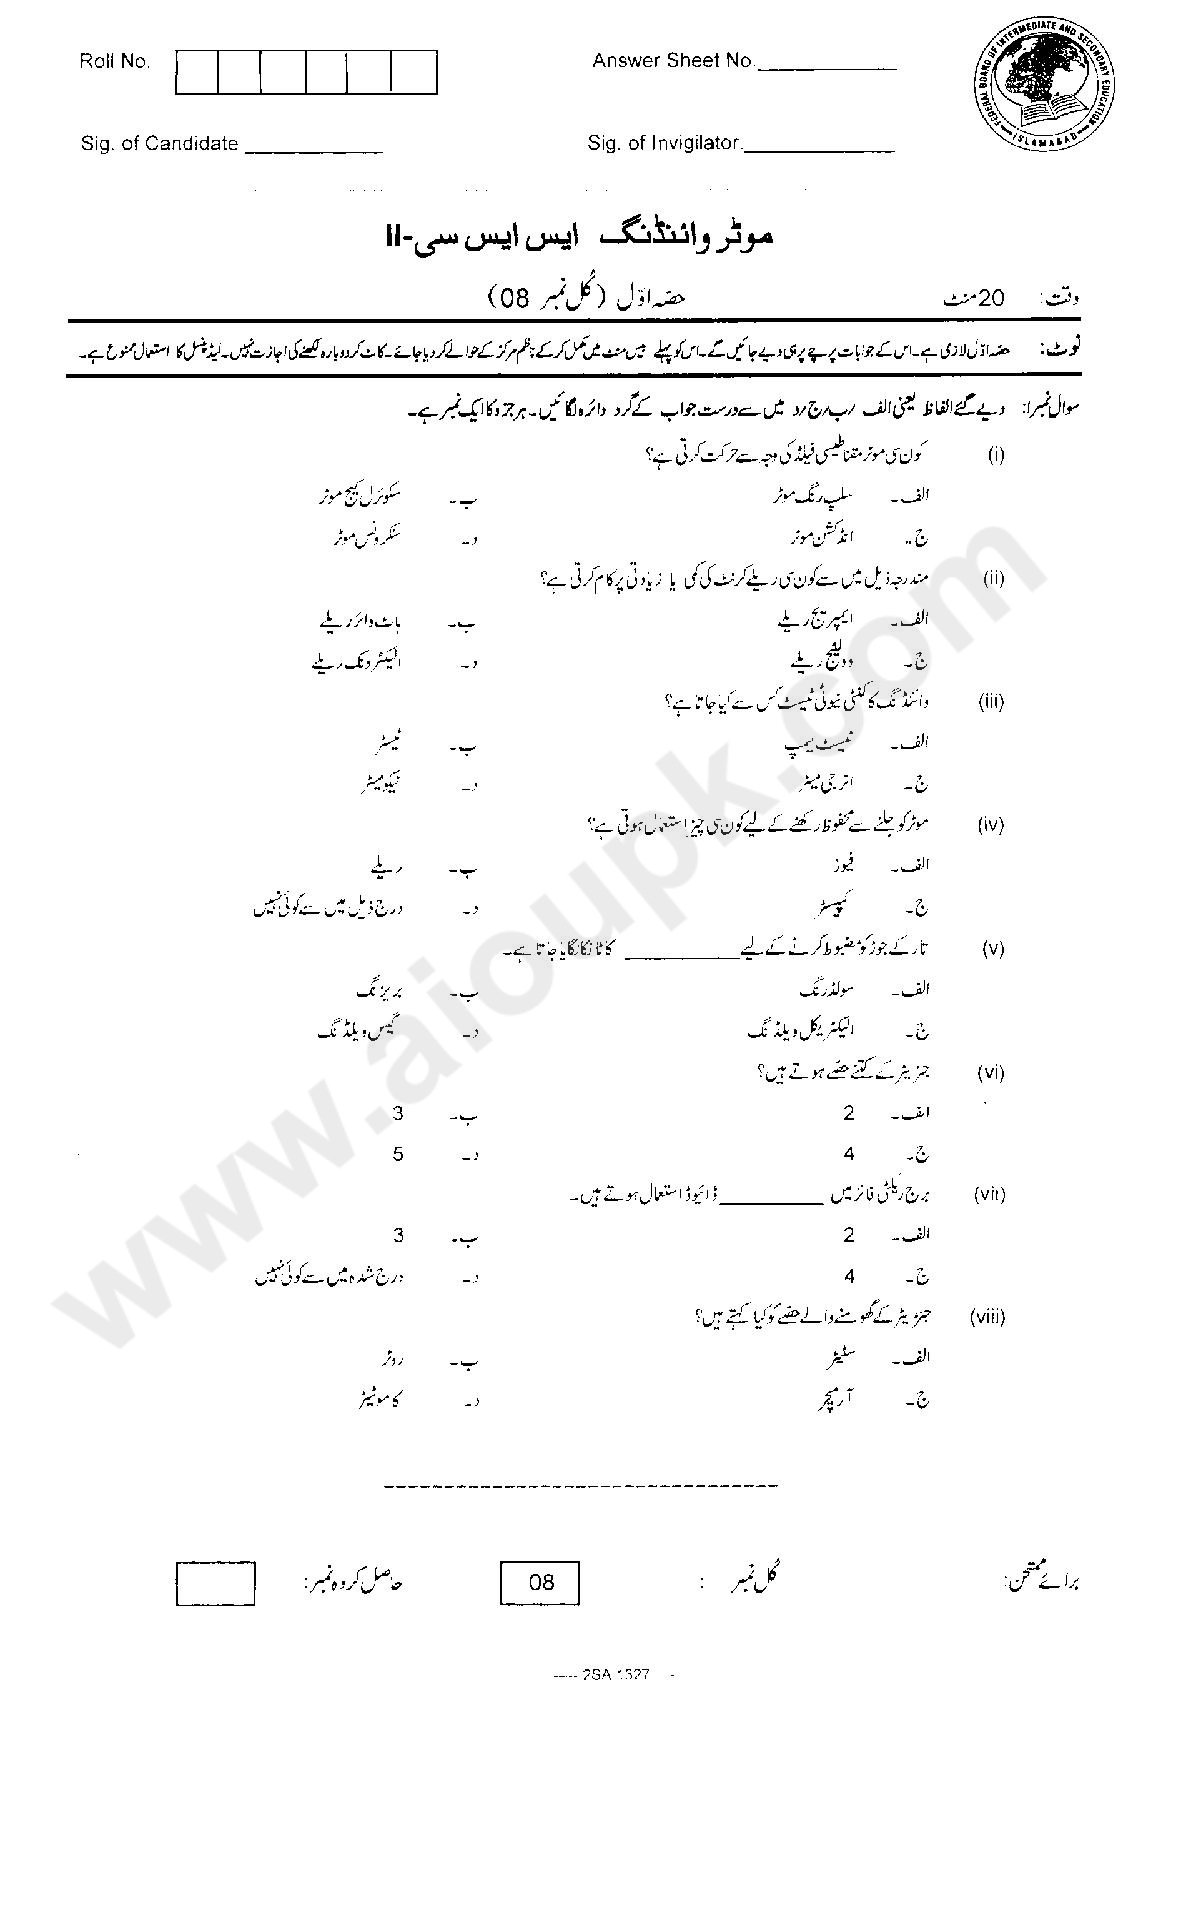 Motor Winding of SSC Annual Examinations 2013 Part-11-page-002